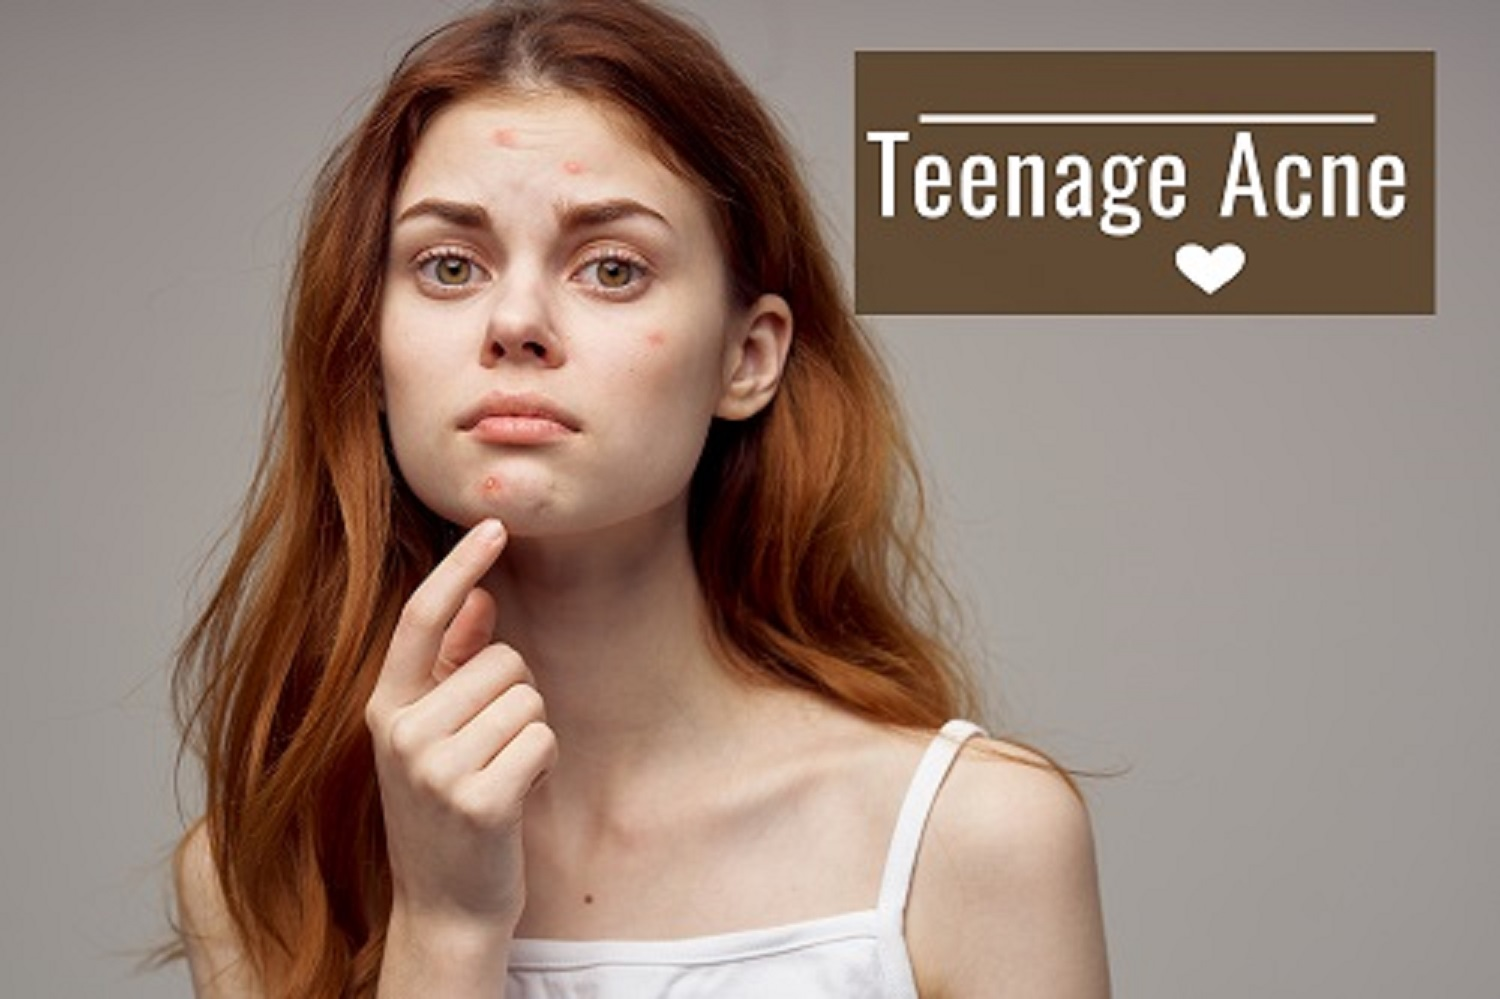 Teenage Acne and Home Remedies